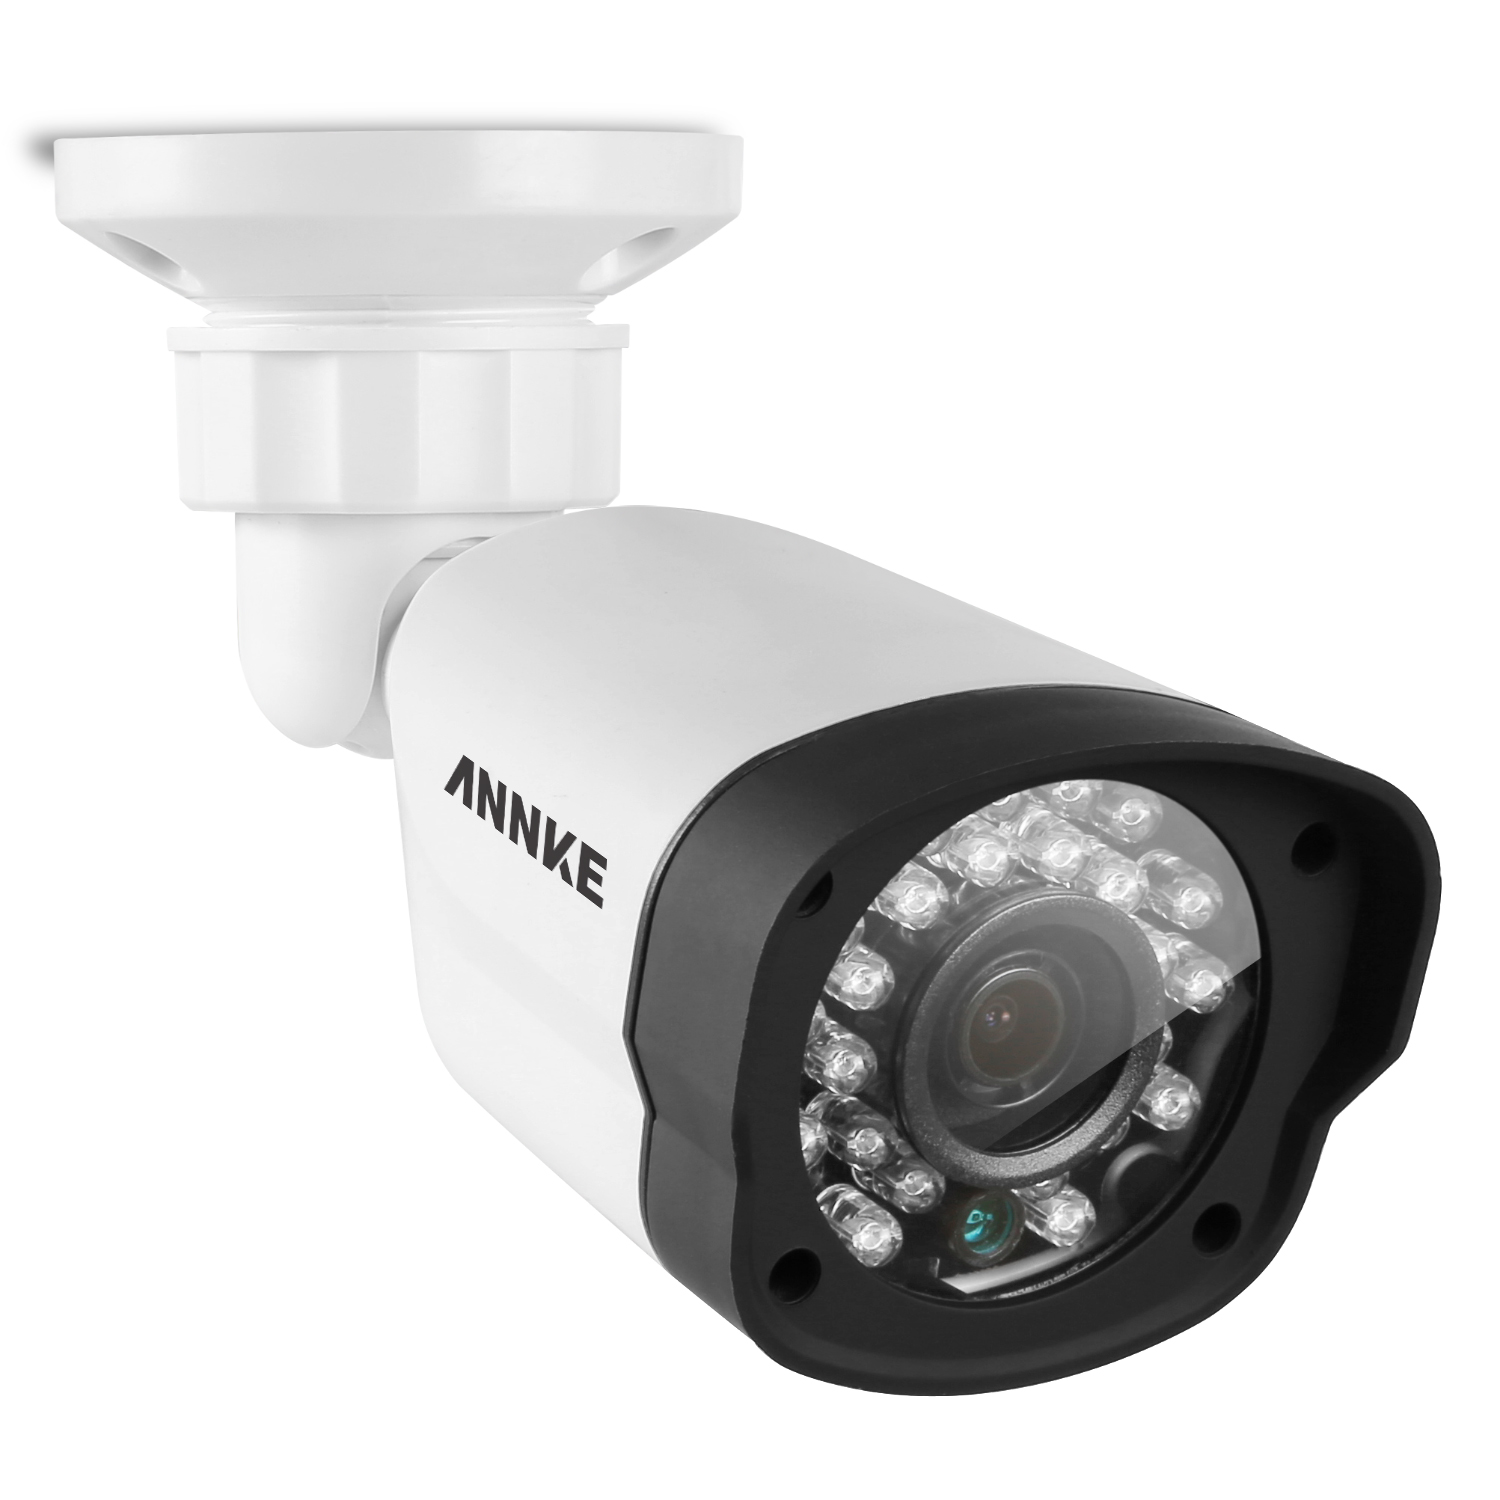 ANNKE 1080P HD 4IN1 CCTV Security Camera with Weatherproof Housing and 66ft IR Night Vision CCTV Surveillance Camera